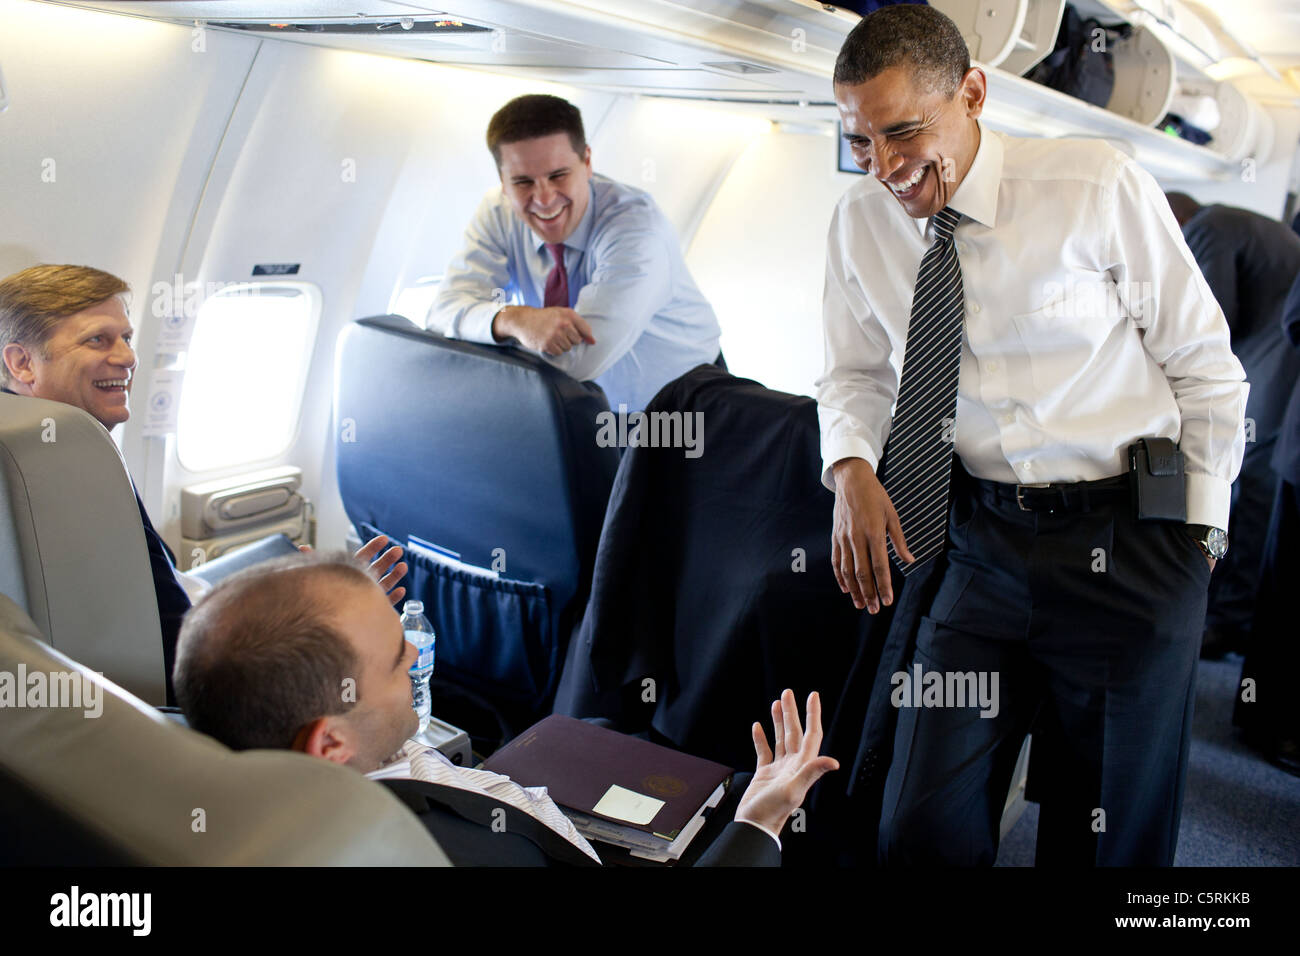 Obama jokes and laughs with Advisors on Air Force One - Stock Image